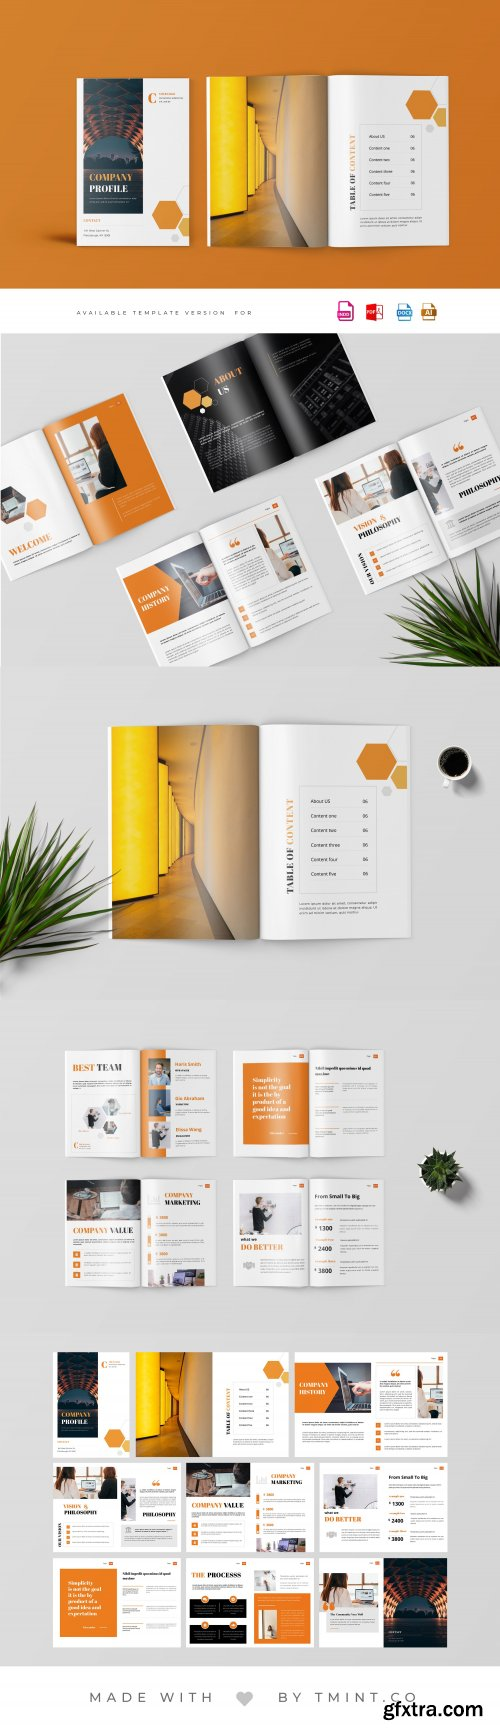 CreativeMarket - Company Project Proposal 4064428